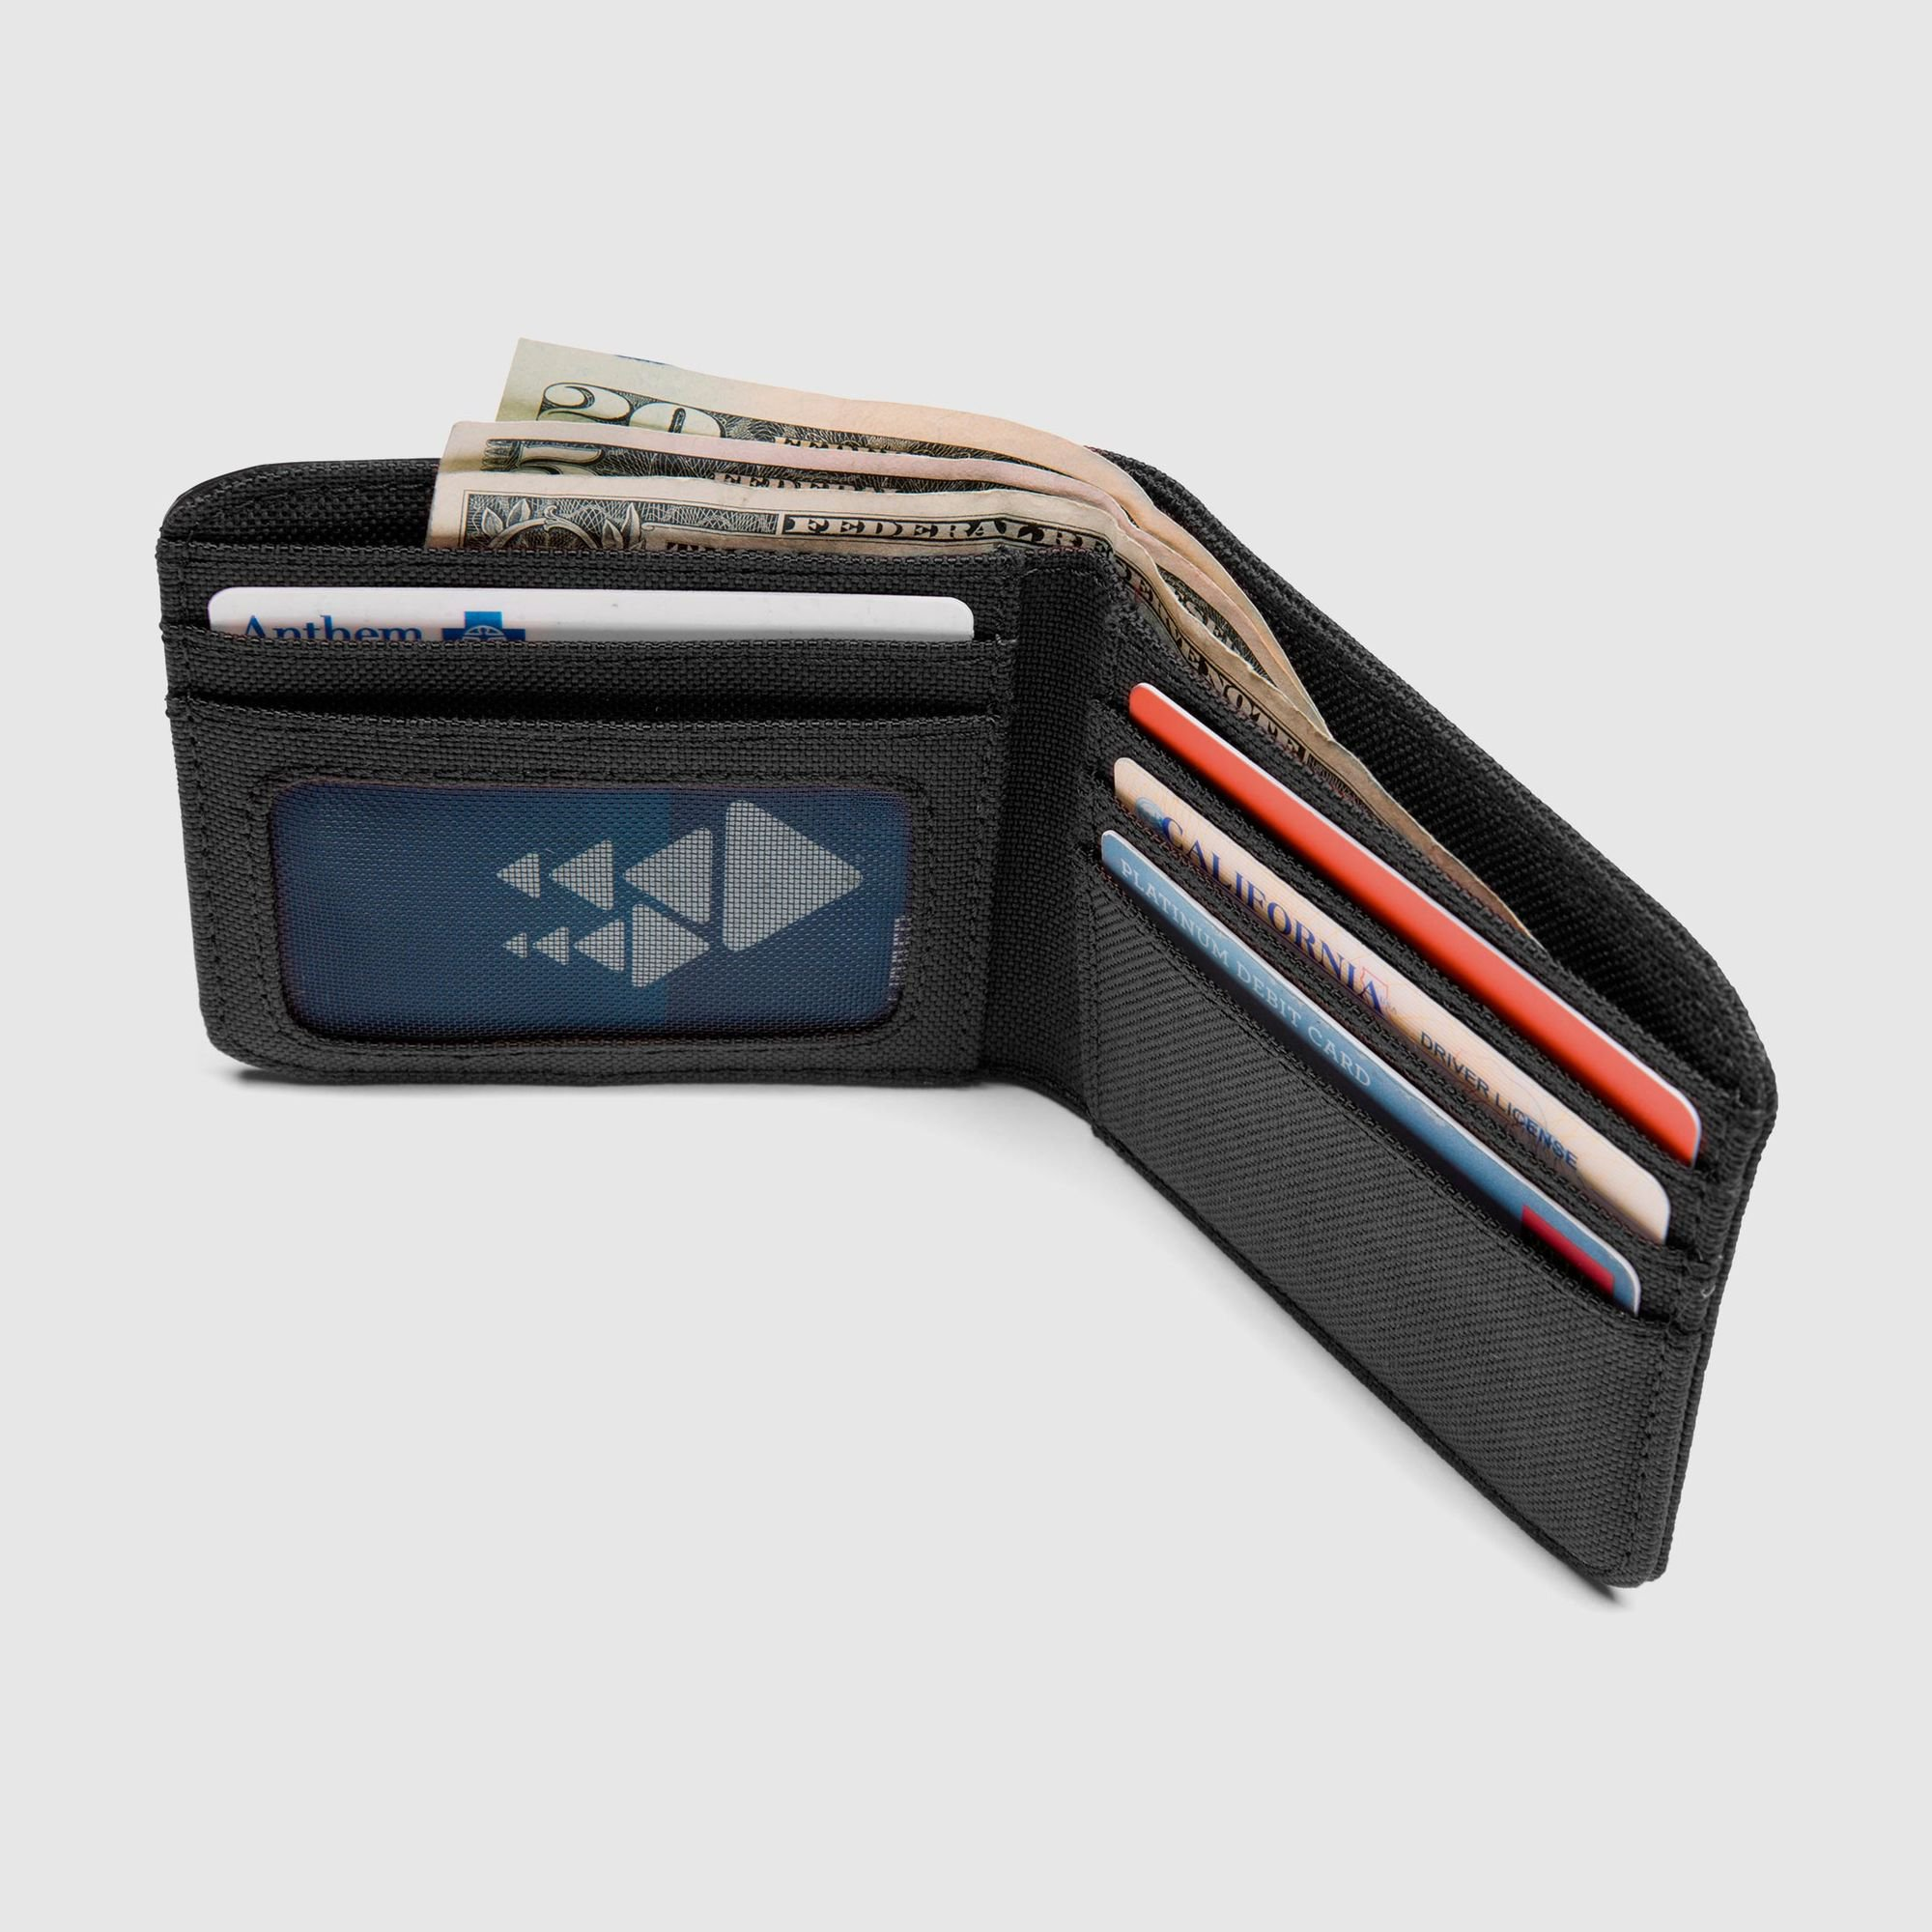 Nylon Bifold Wallet - Amplify your Gear | Chrome Industries